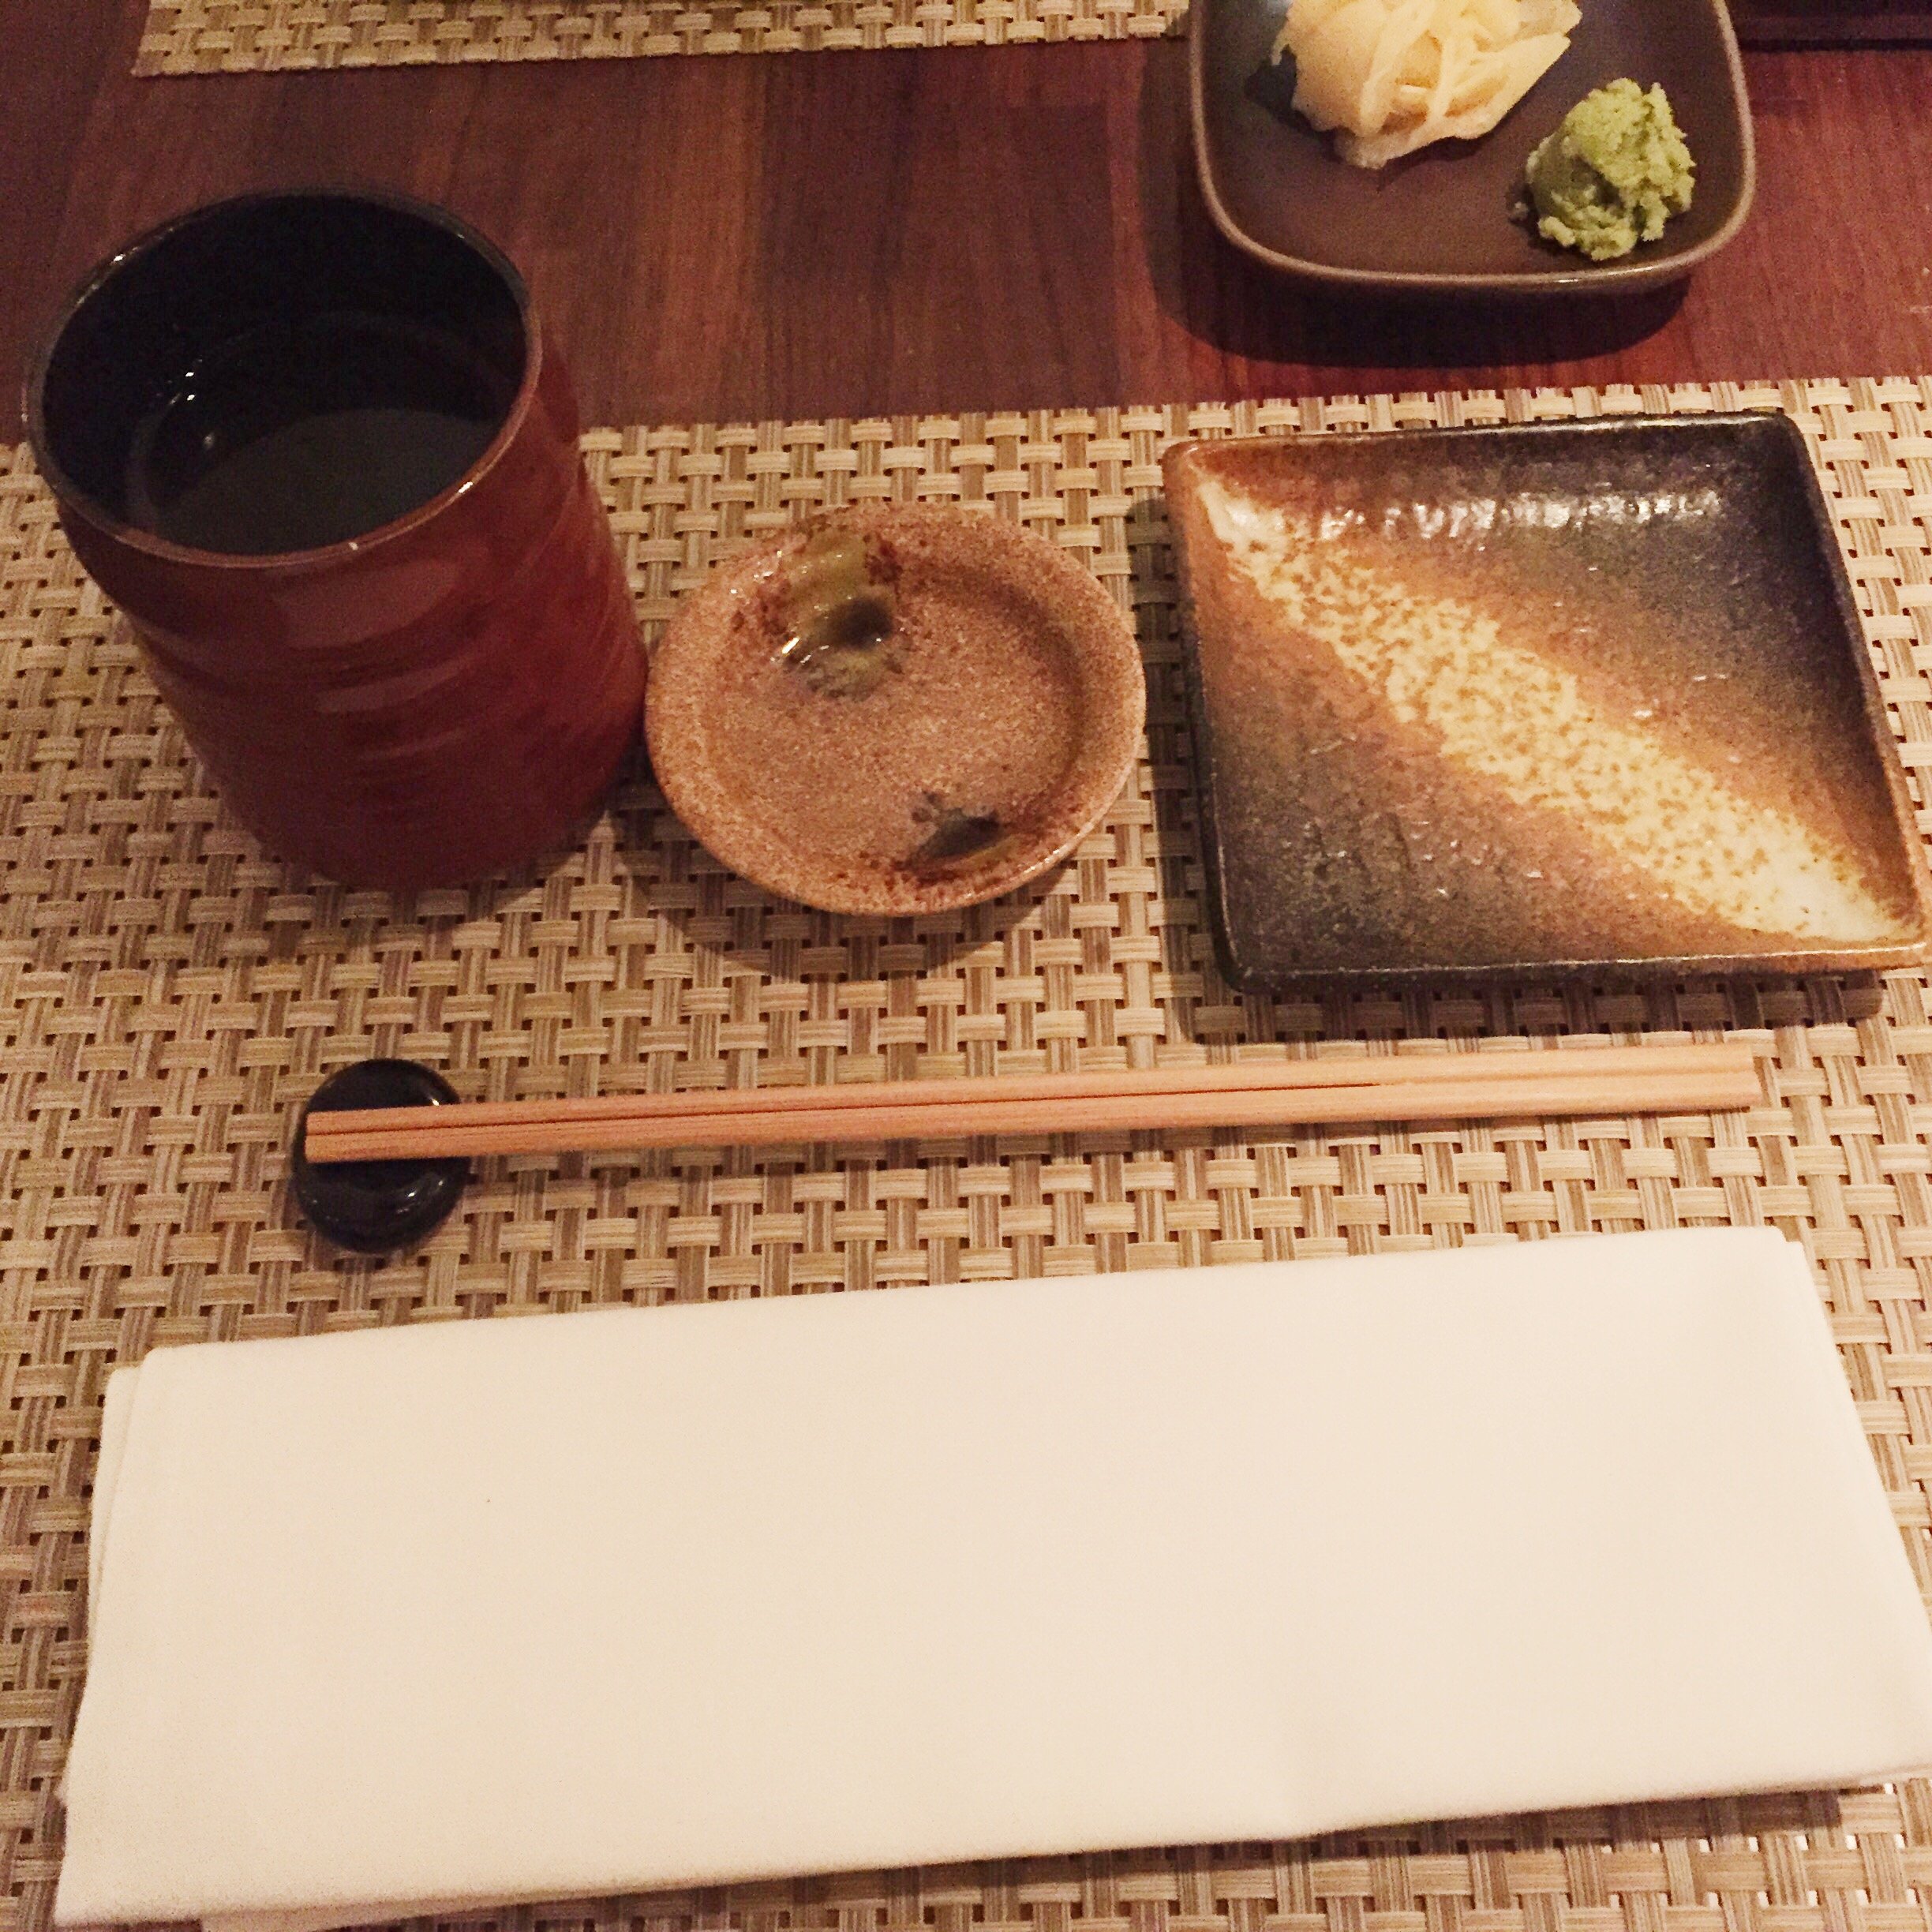 Calming place setting